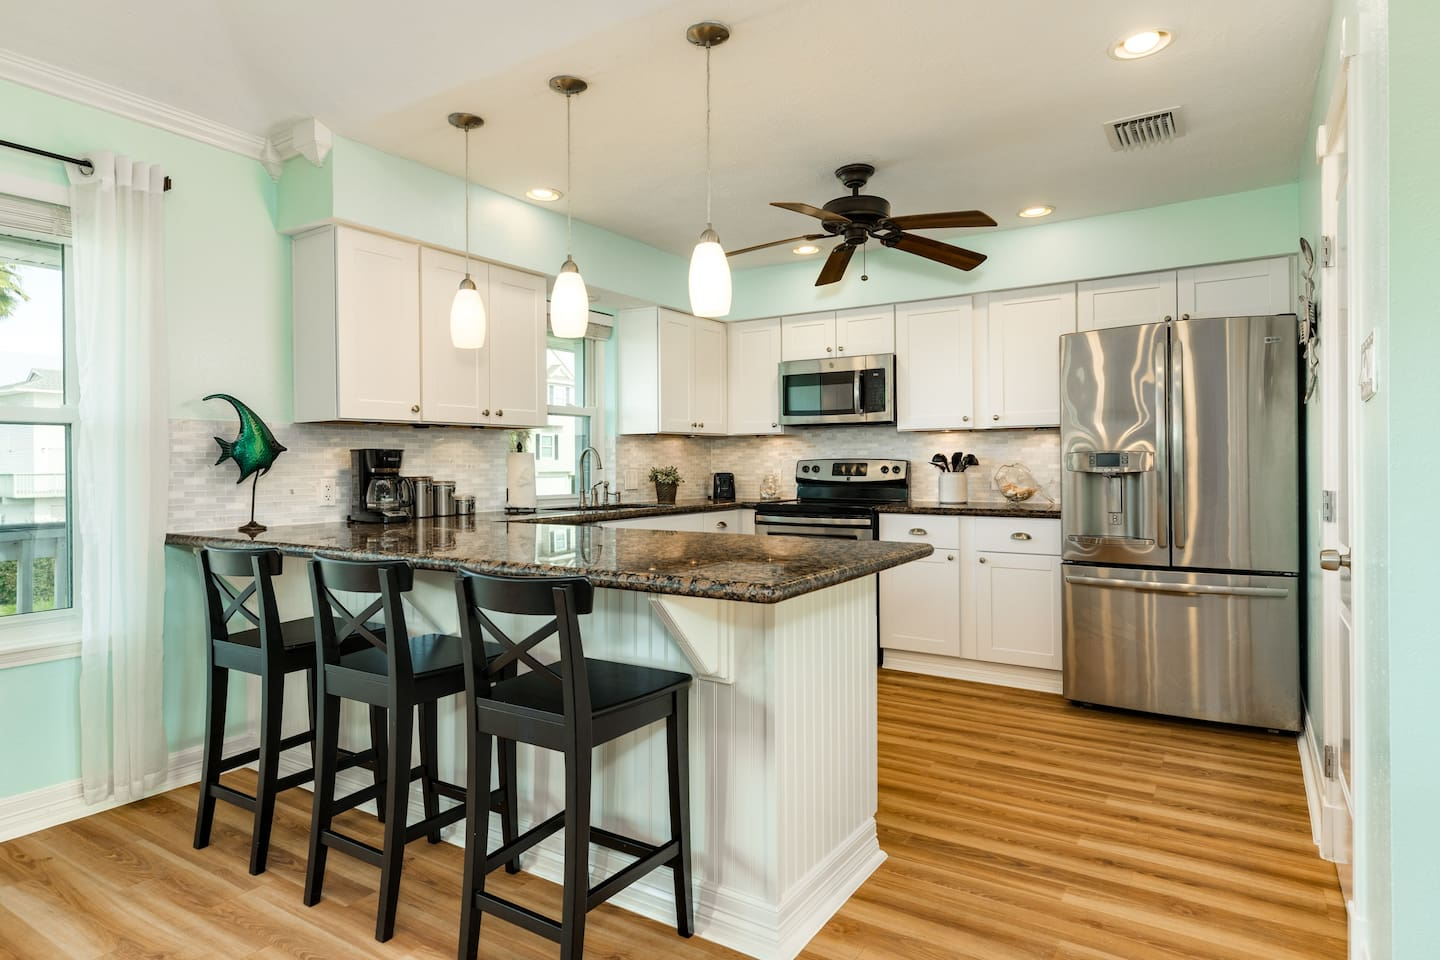 Fully stocked kitchen with granite counter-tops and stainless appliances.